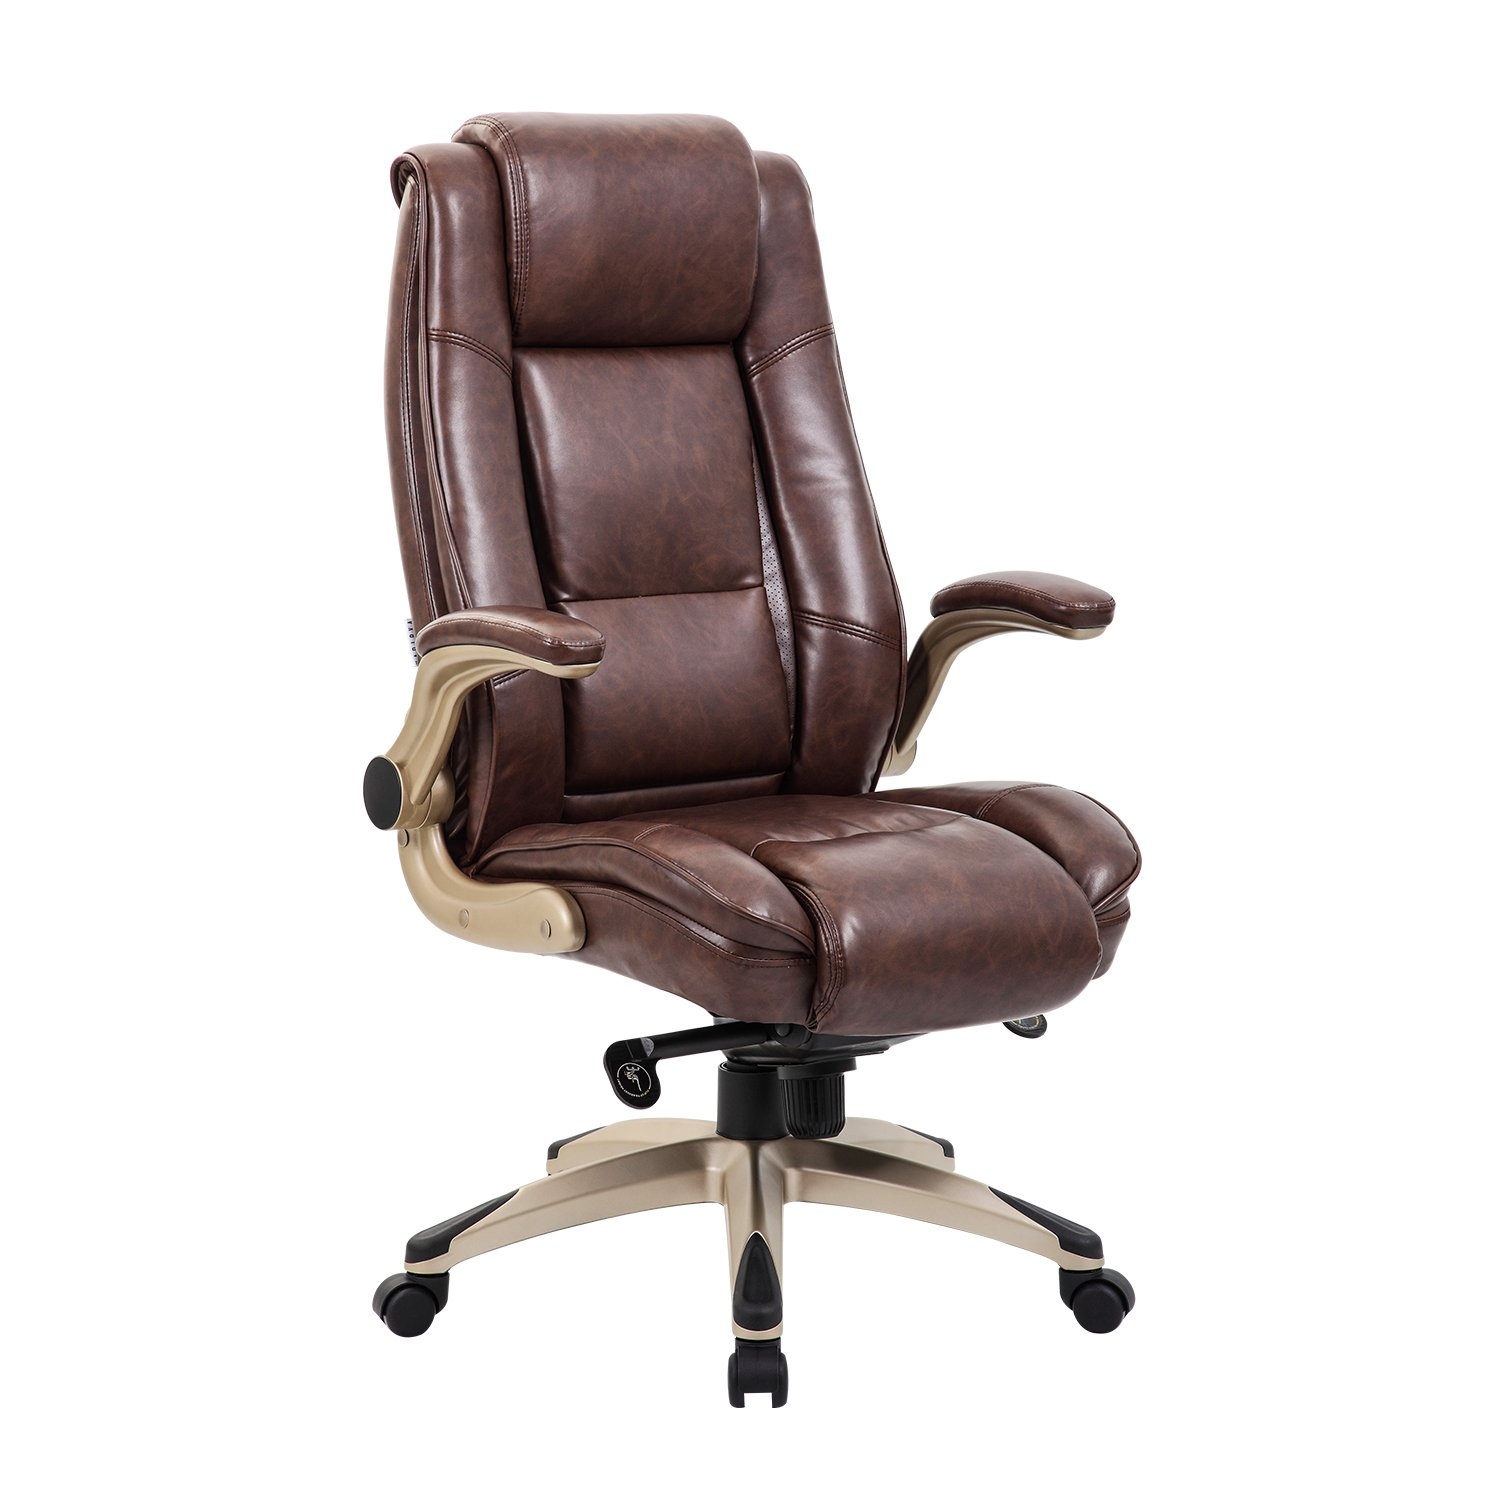 Kadirya High Back Bonded Leather Executive Office Chair Adjustable Recline Locking Mechanism Flip Up Arms Computer Desk Chair Thick Padding And